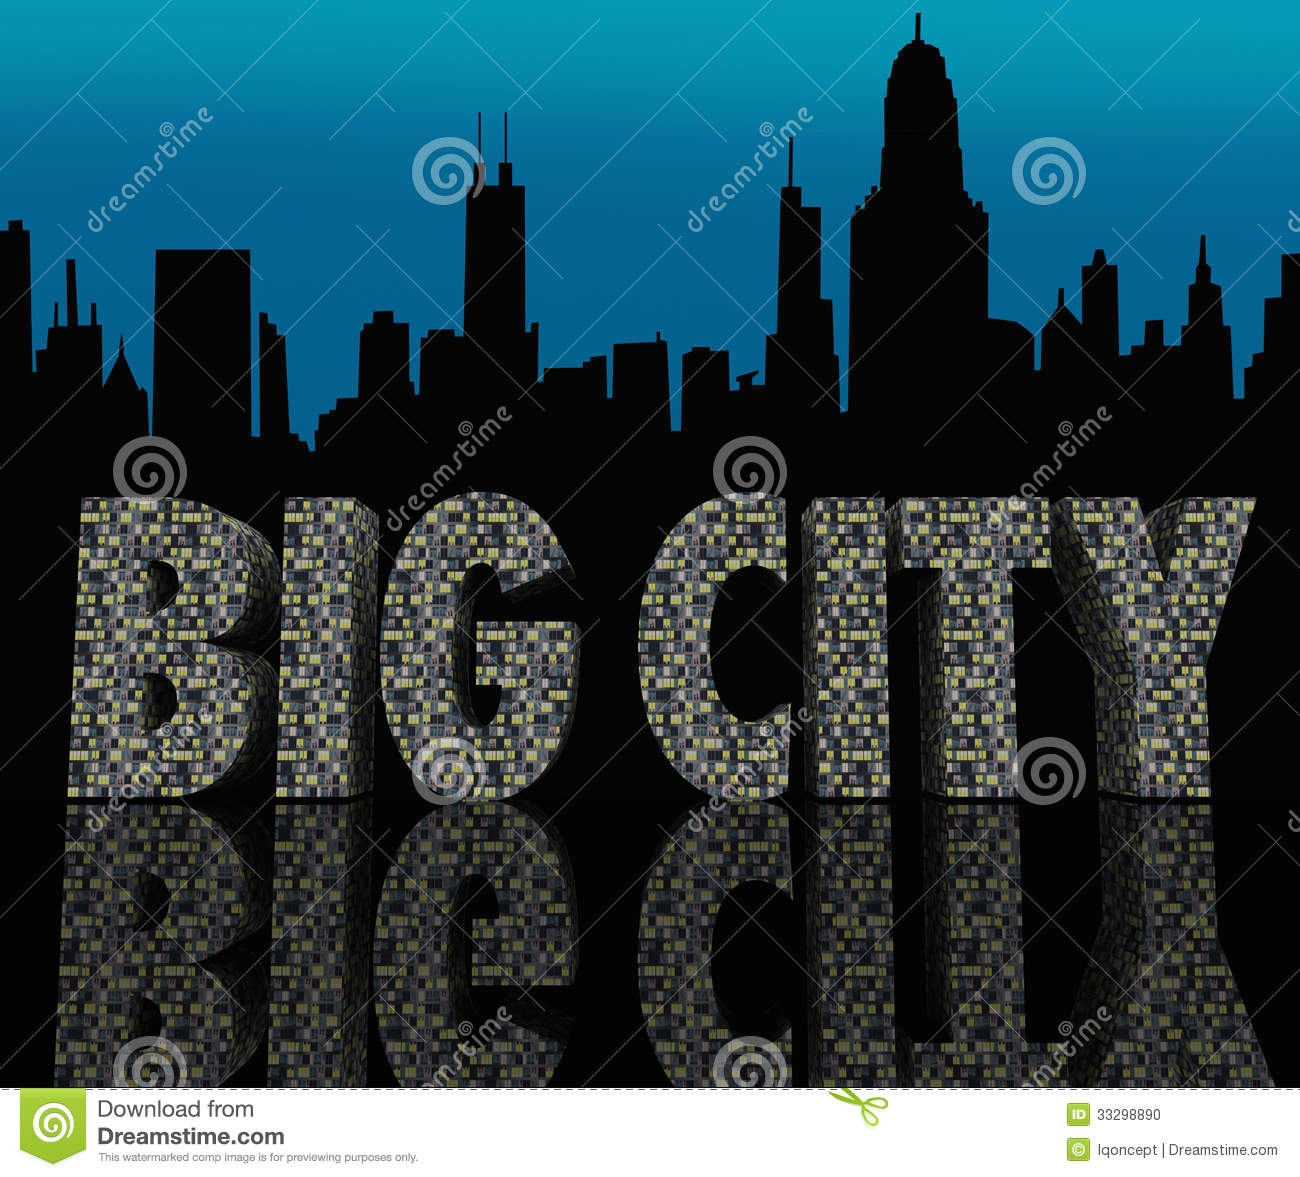 Essay On The Life In A Big City